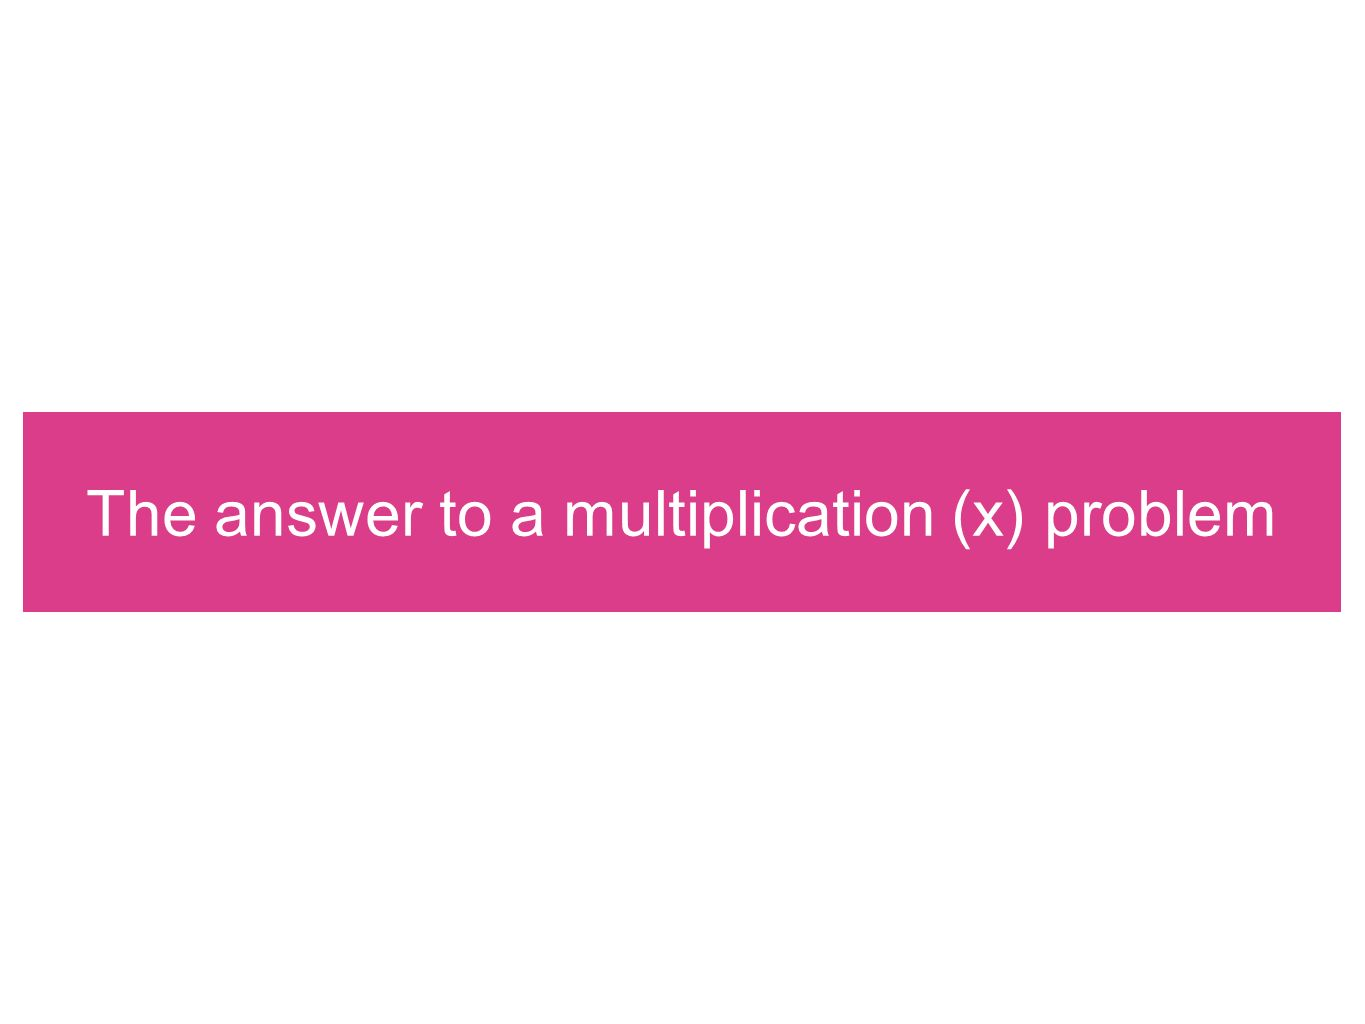 The answer to a multiplication (x) problem